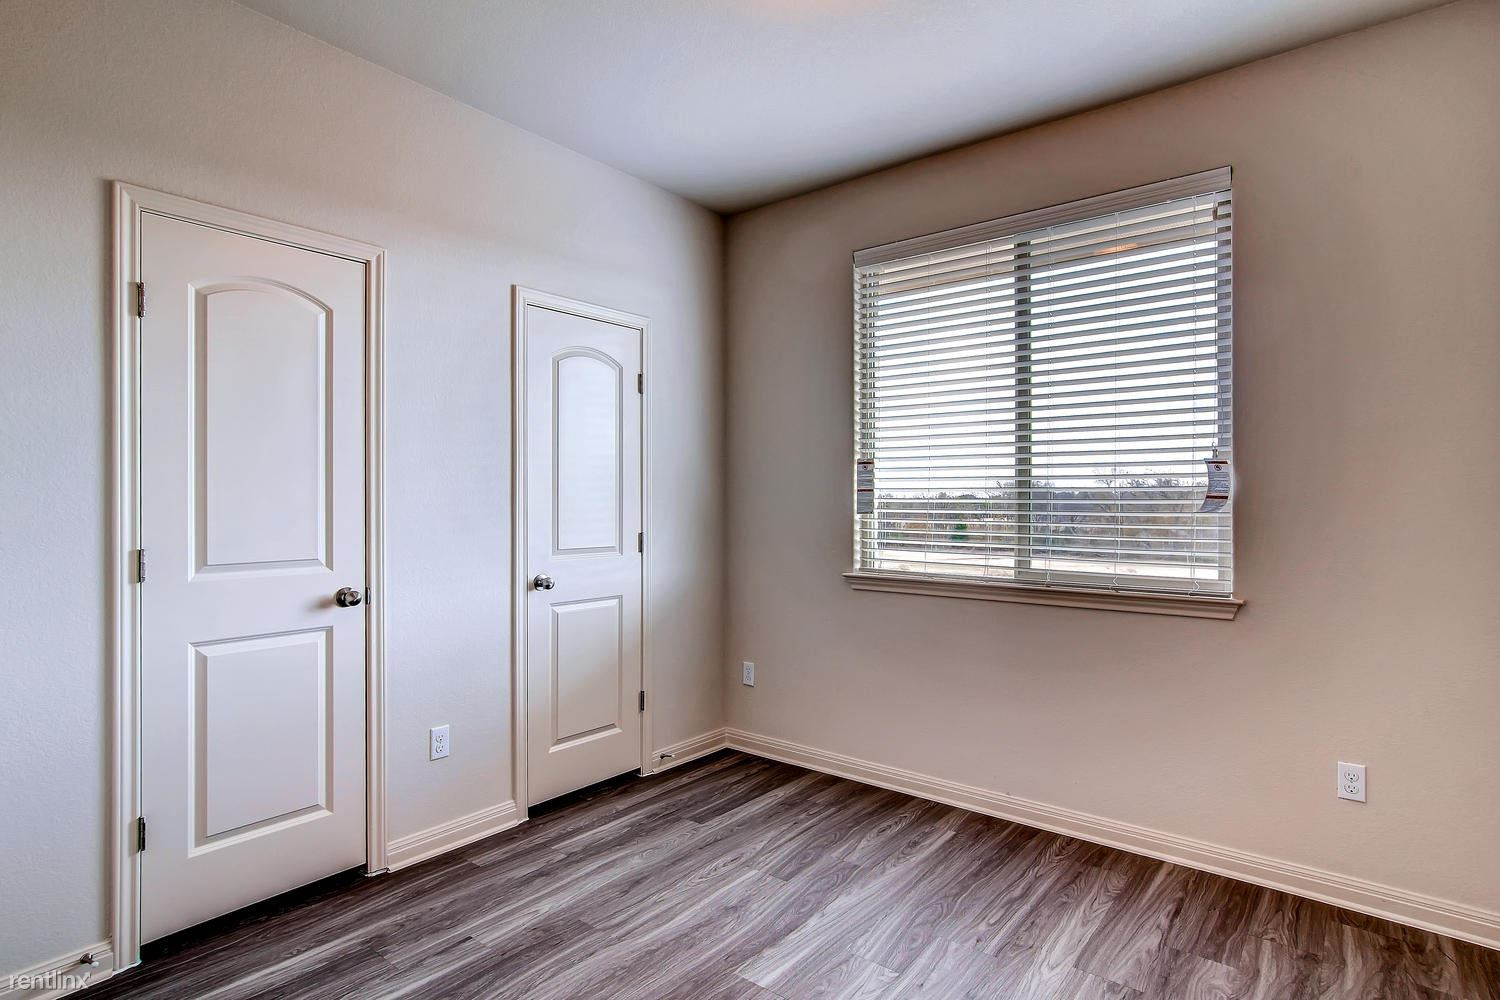 DoubleEagleTownhomes - 3 Bedroom - large-017-Double Eagle Townhomes 1  3-1500x1000-72dpi